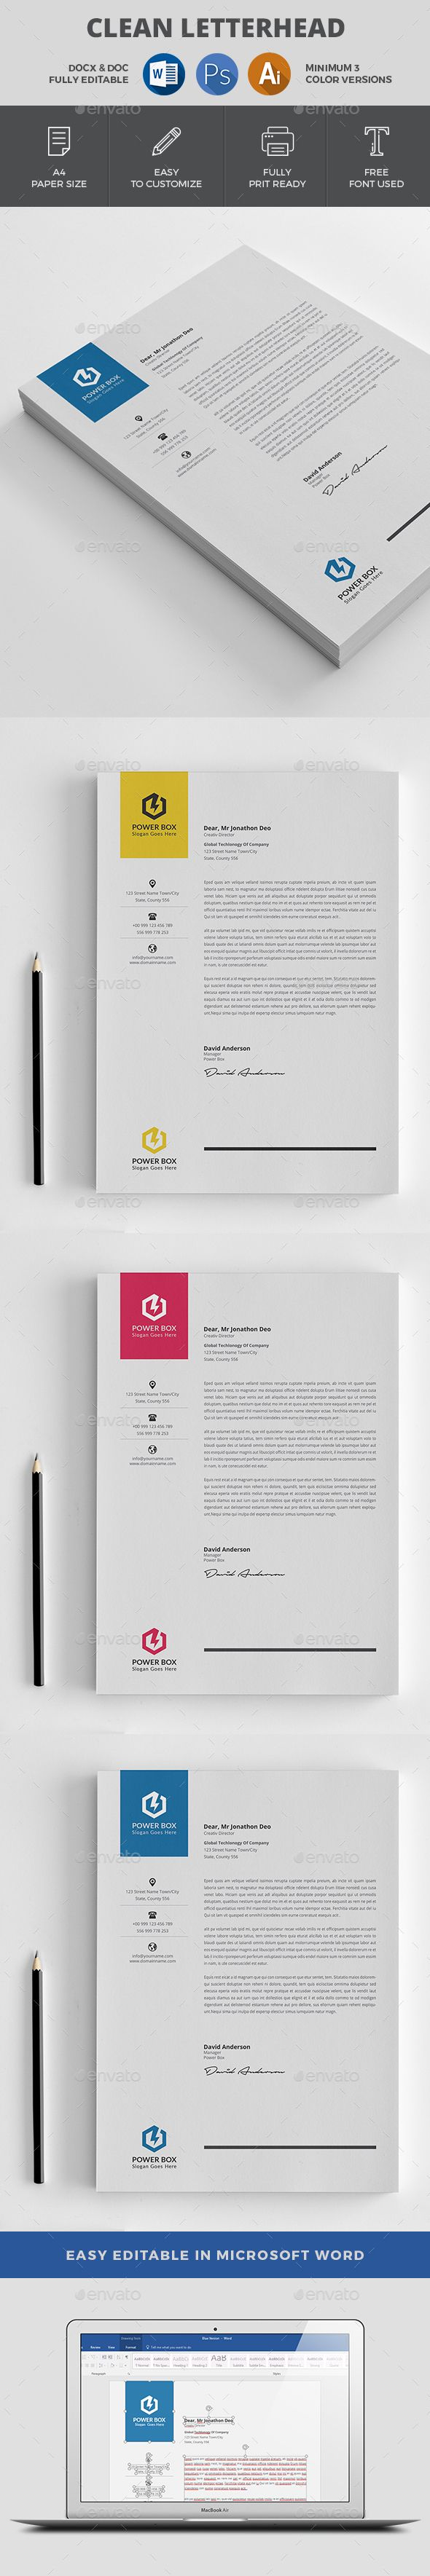 Best 25+ Letterhead design ideas on Pinterest | Letterhead ...